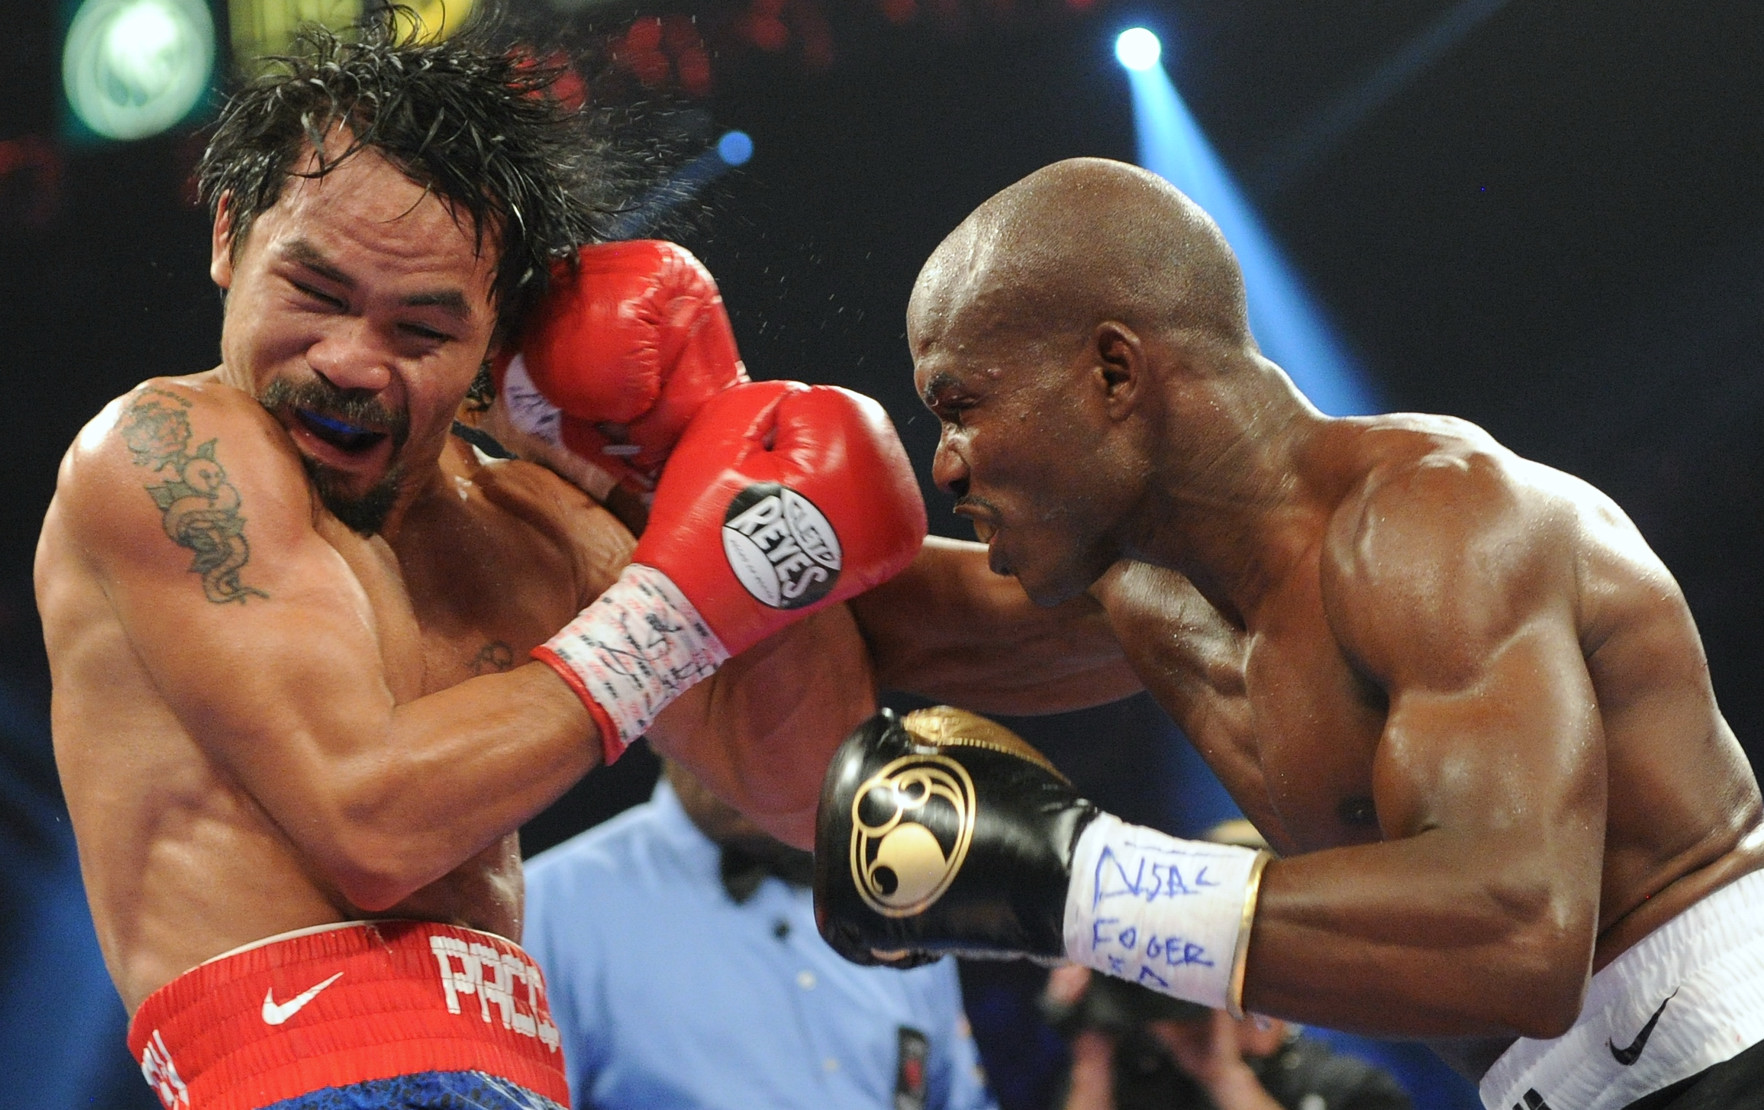 Pacquiao vs Bradley I was closer than generally acknowledged